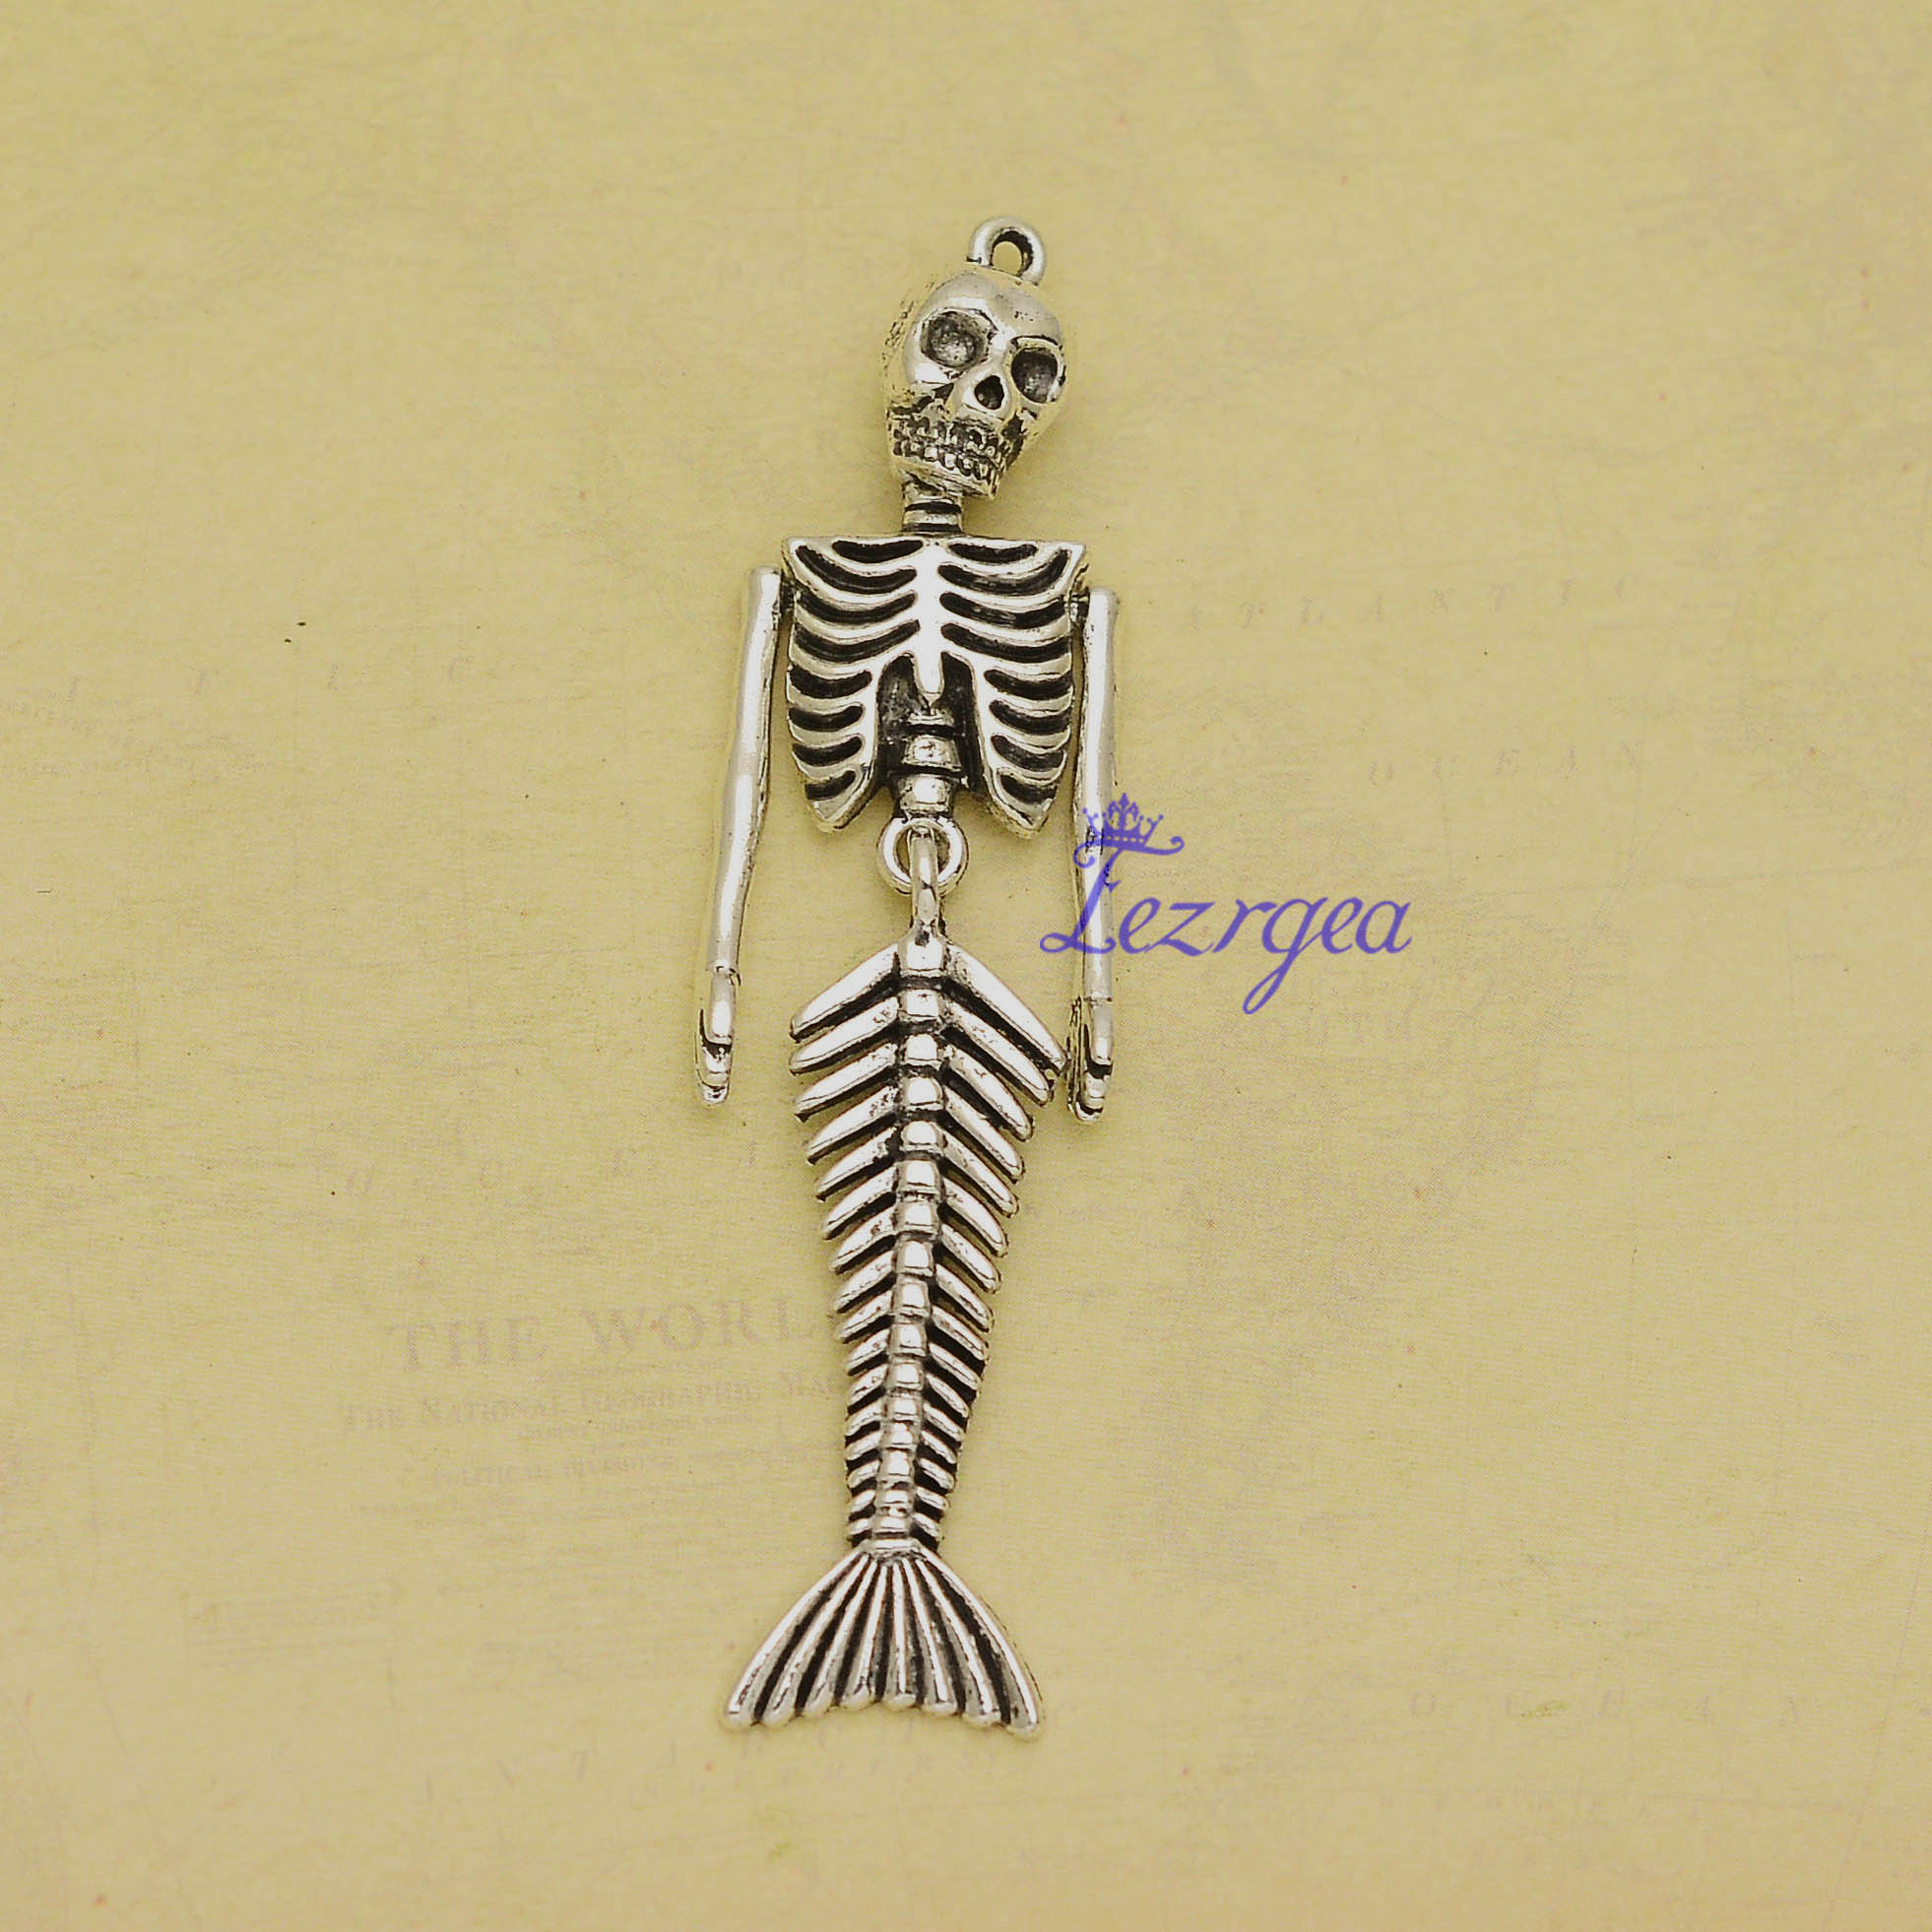 3pcs/lot--72x18mm, Antique silver plated Mermaid Skeleton charm,DIY supplies,Jewelry accessories